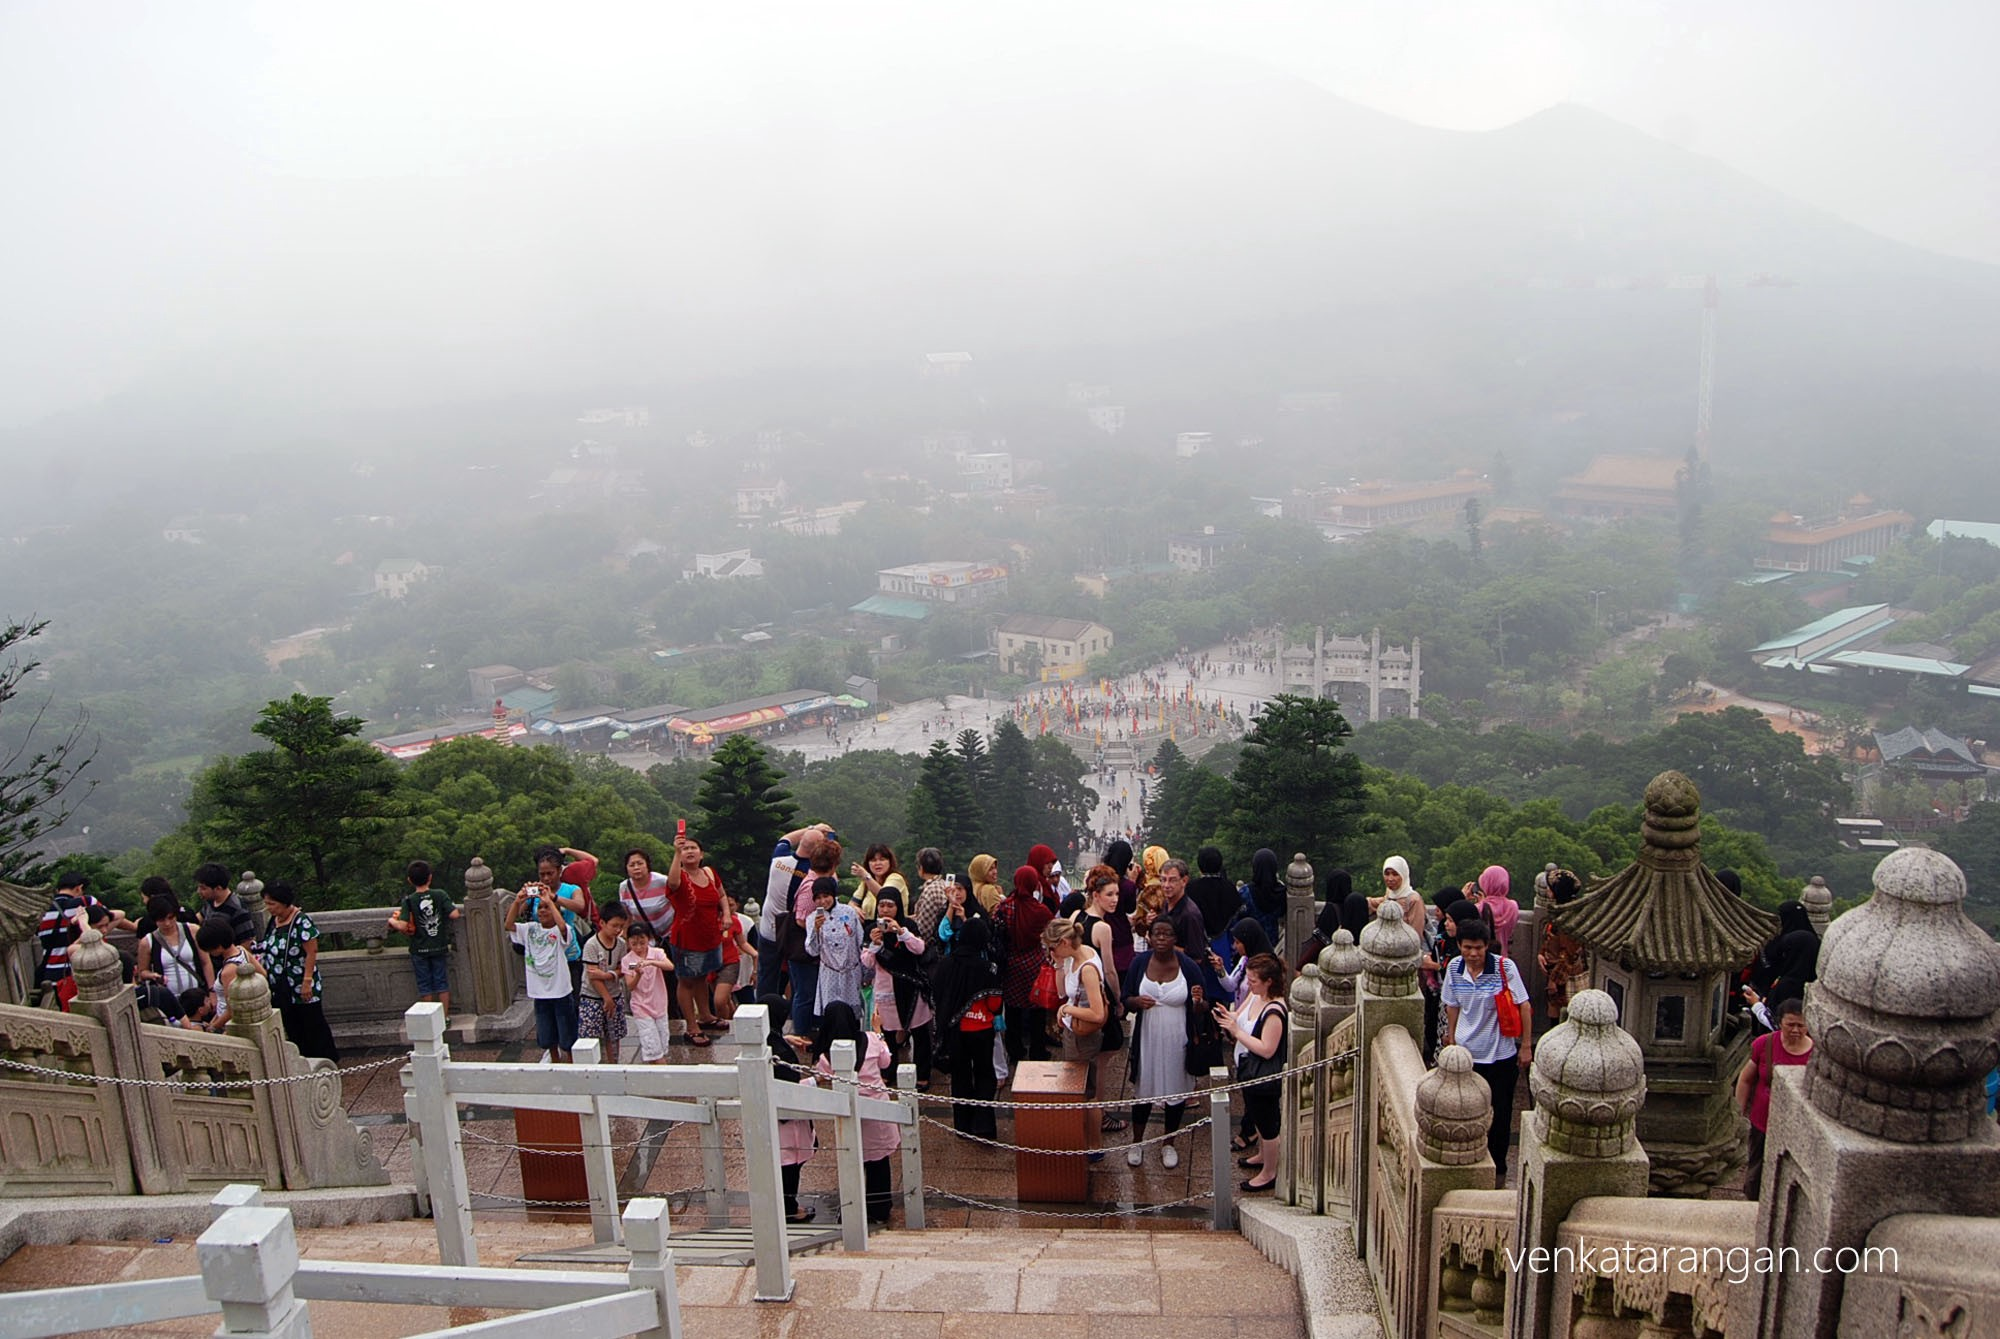 View from the top at Ngong Ping, Lantau Island, in Hong Kong